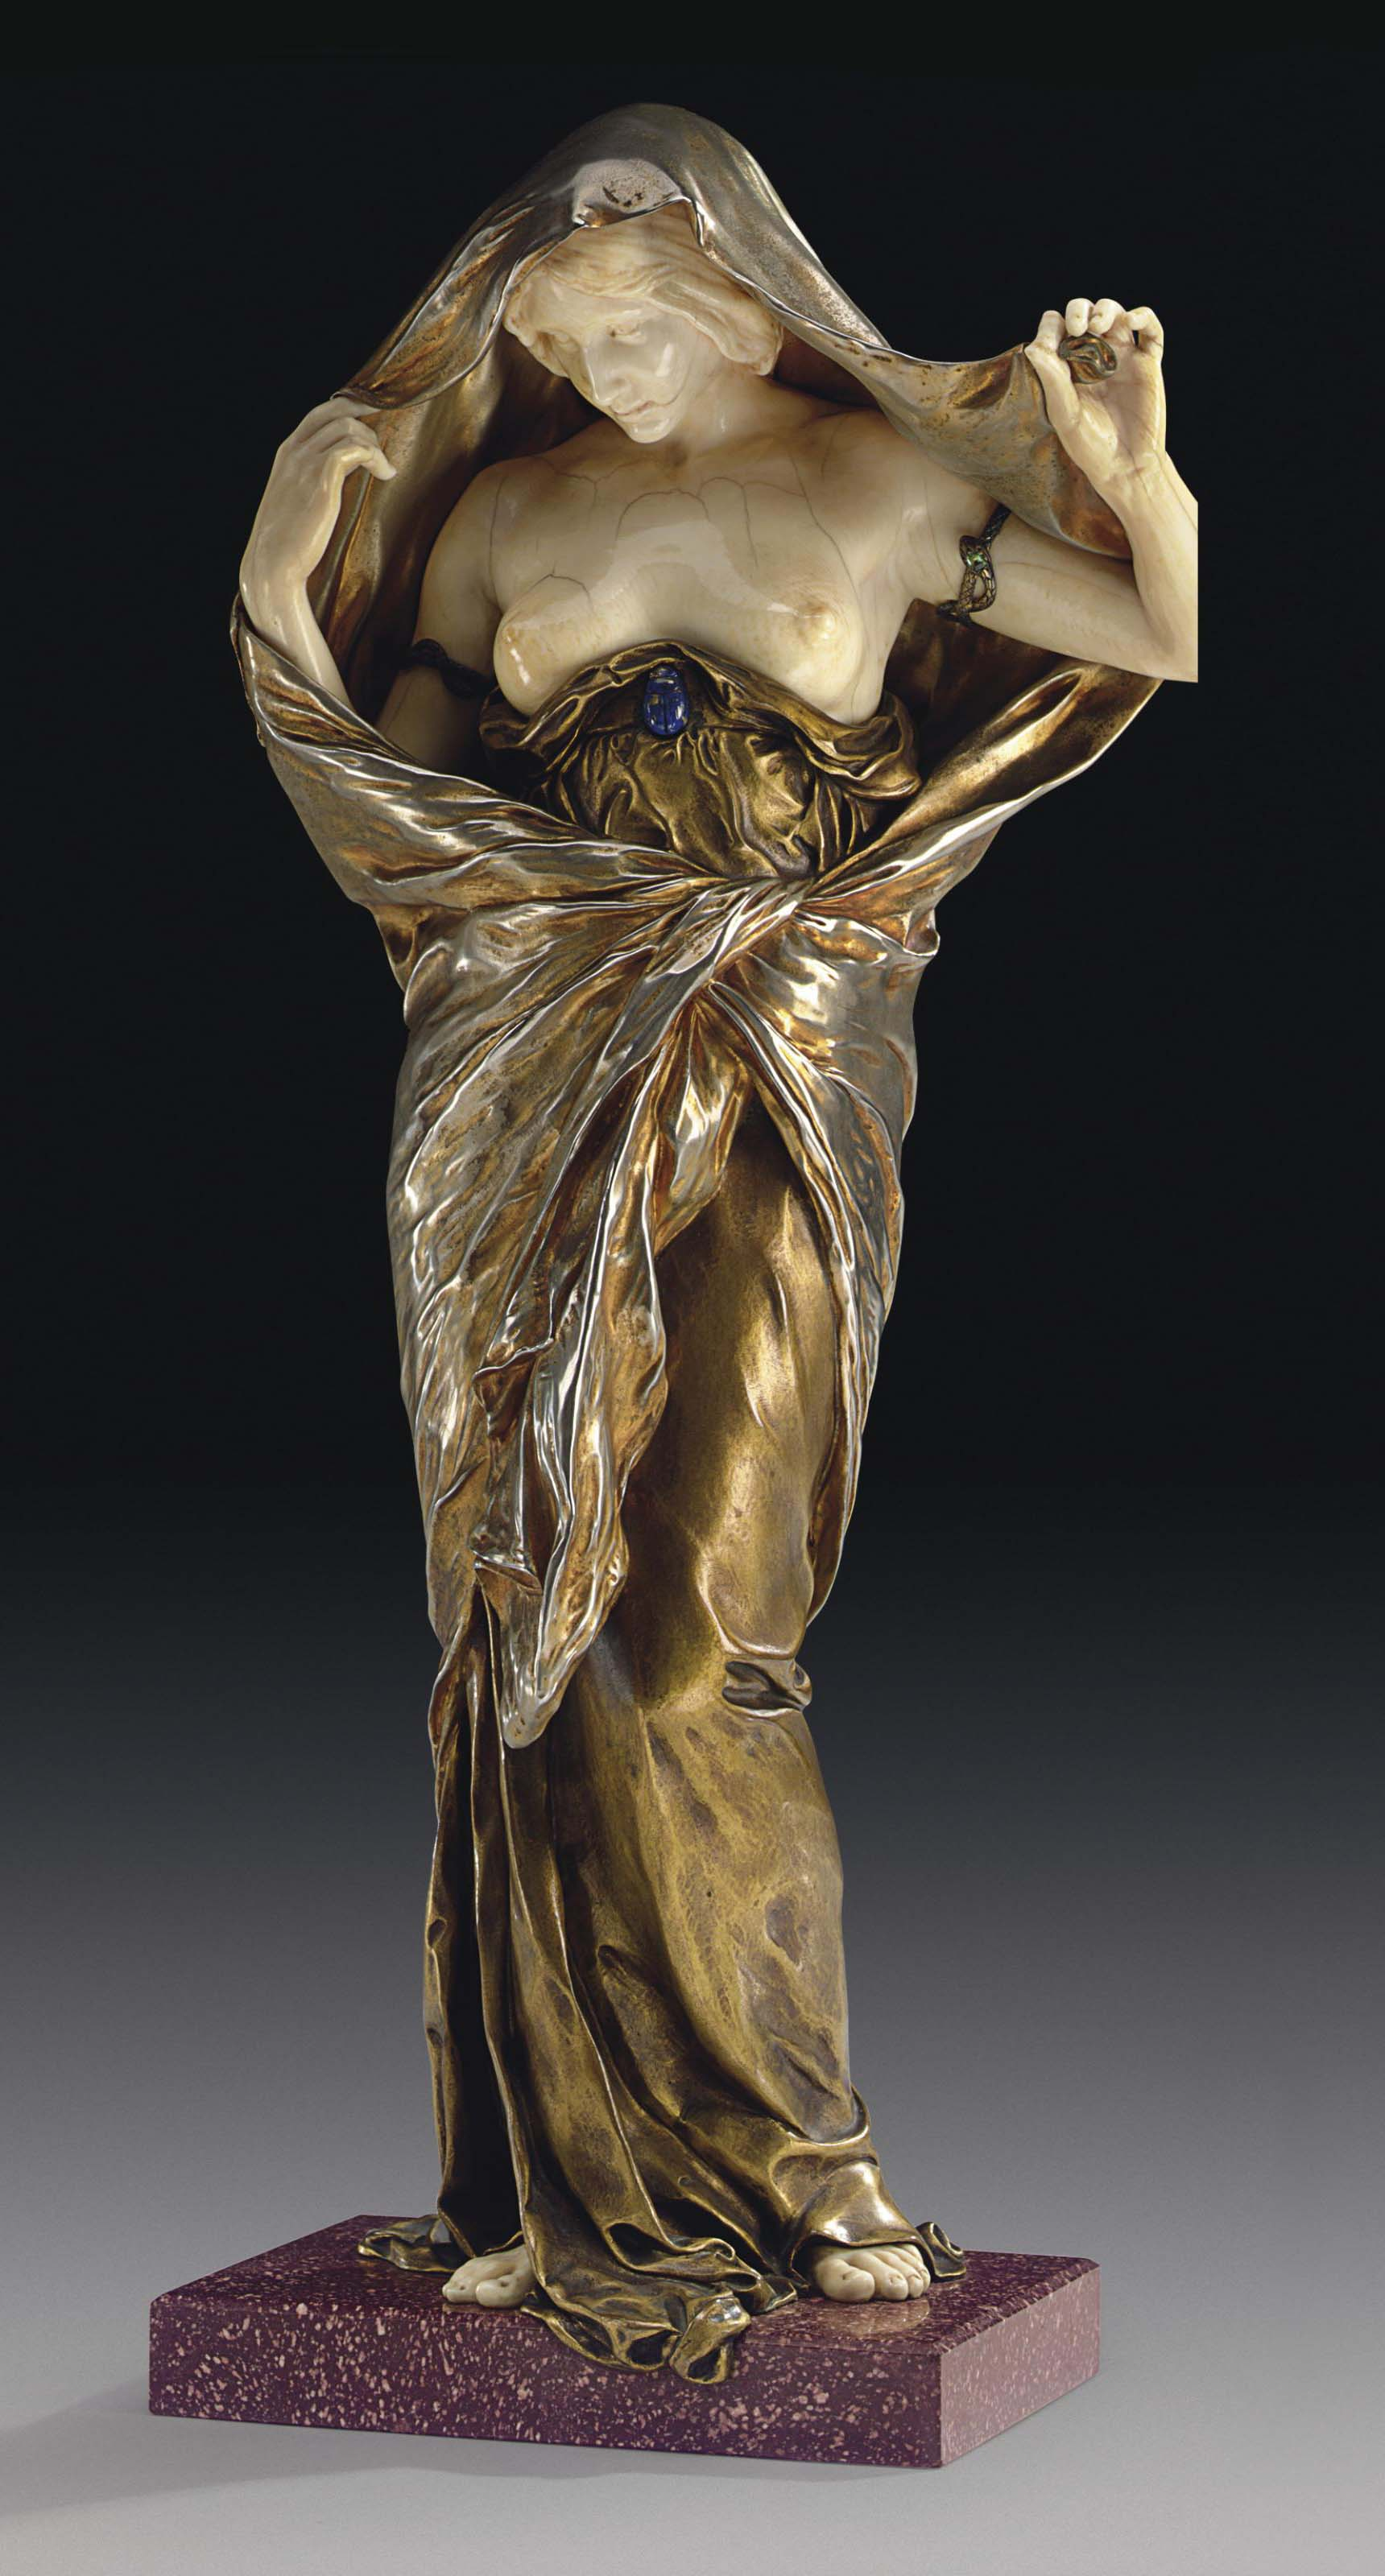 A FRENCH GILT-BRONZE, IVORY, LAPIS LAZULI AND PORPHYRY FIGURE ENTITLED 'LA NATURE SE DEVOILANT DEVANT LA SCIENCE' (NATURE REVEALING HERSELF BEFORE SCIENCE)